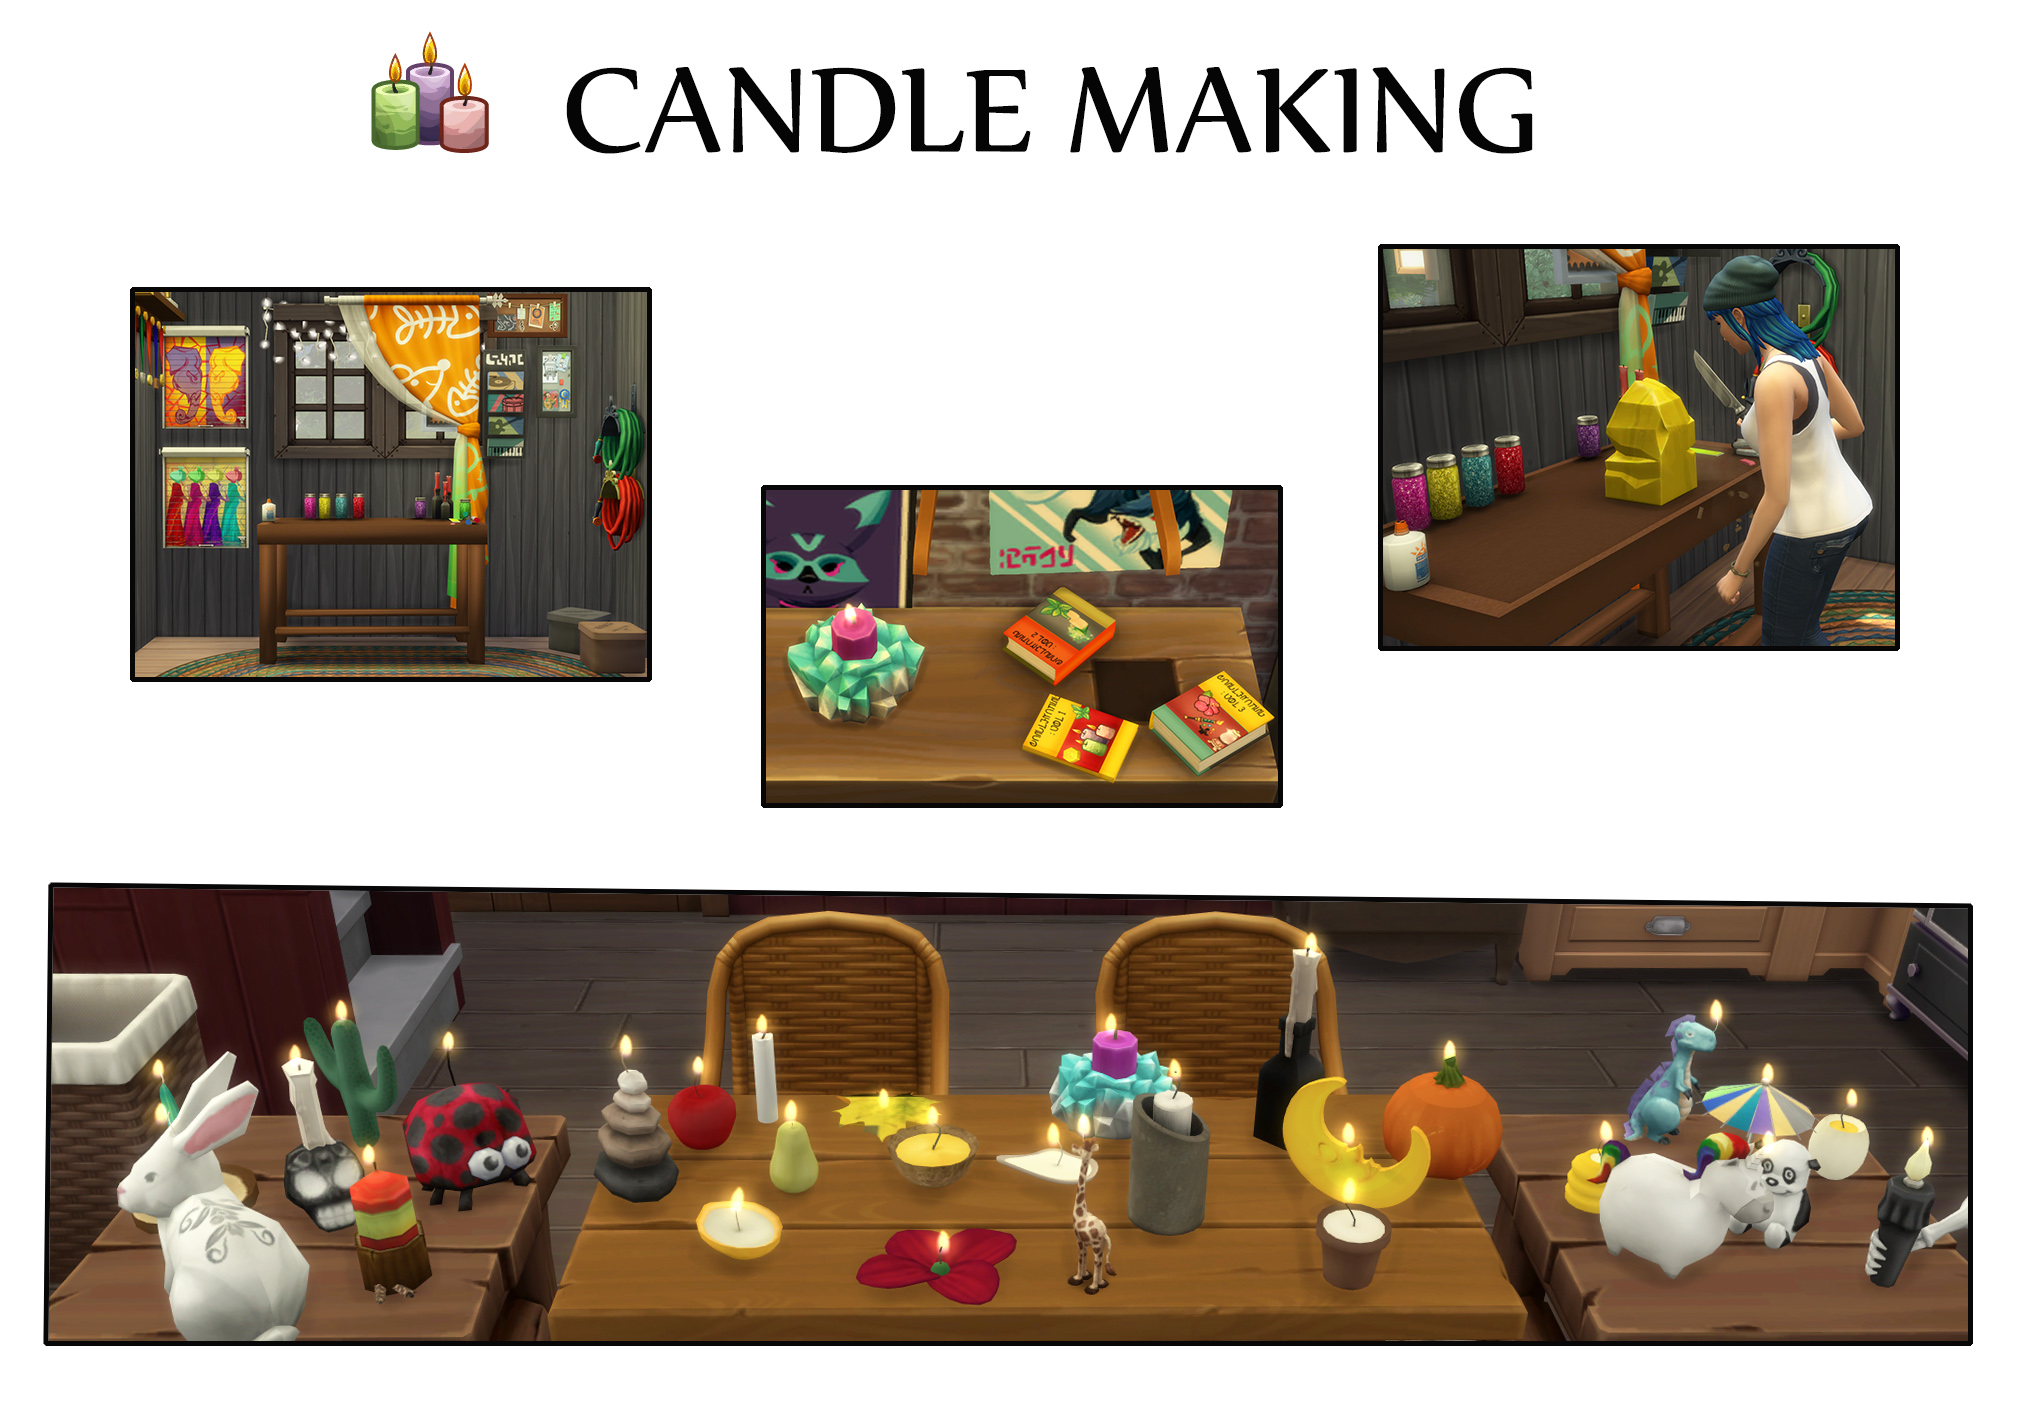 Mod The Sims - Candle Making (Update 17th April 2019)